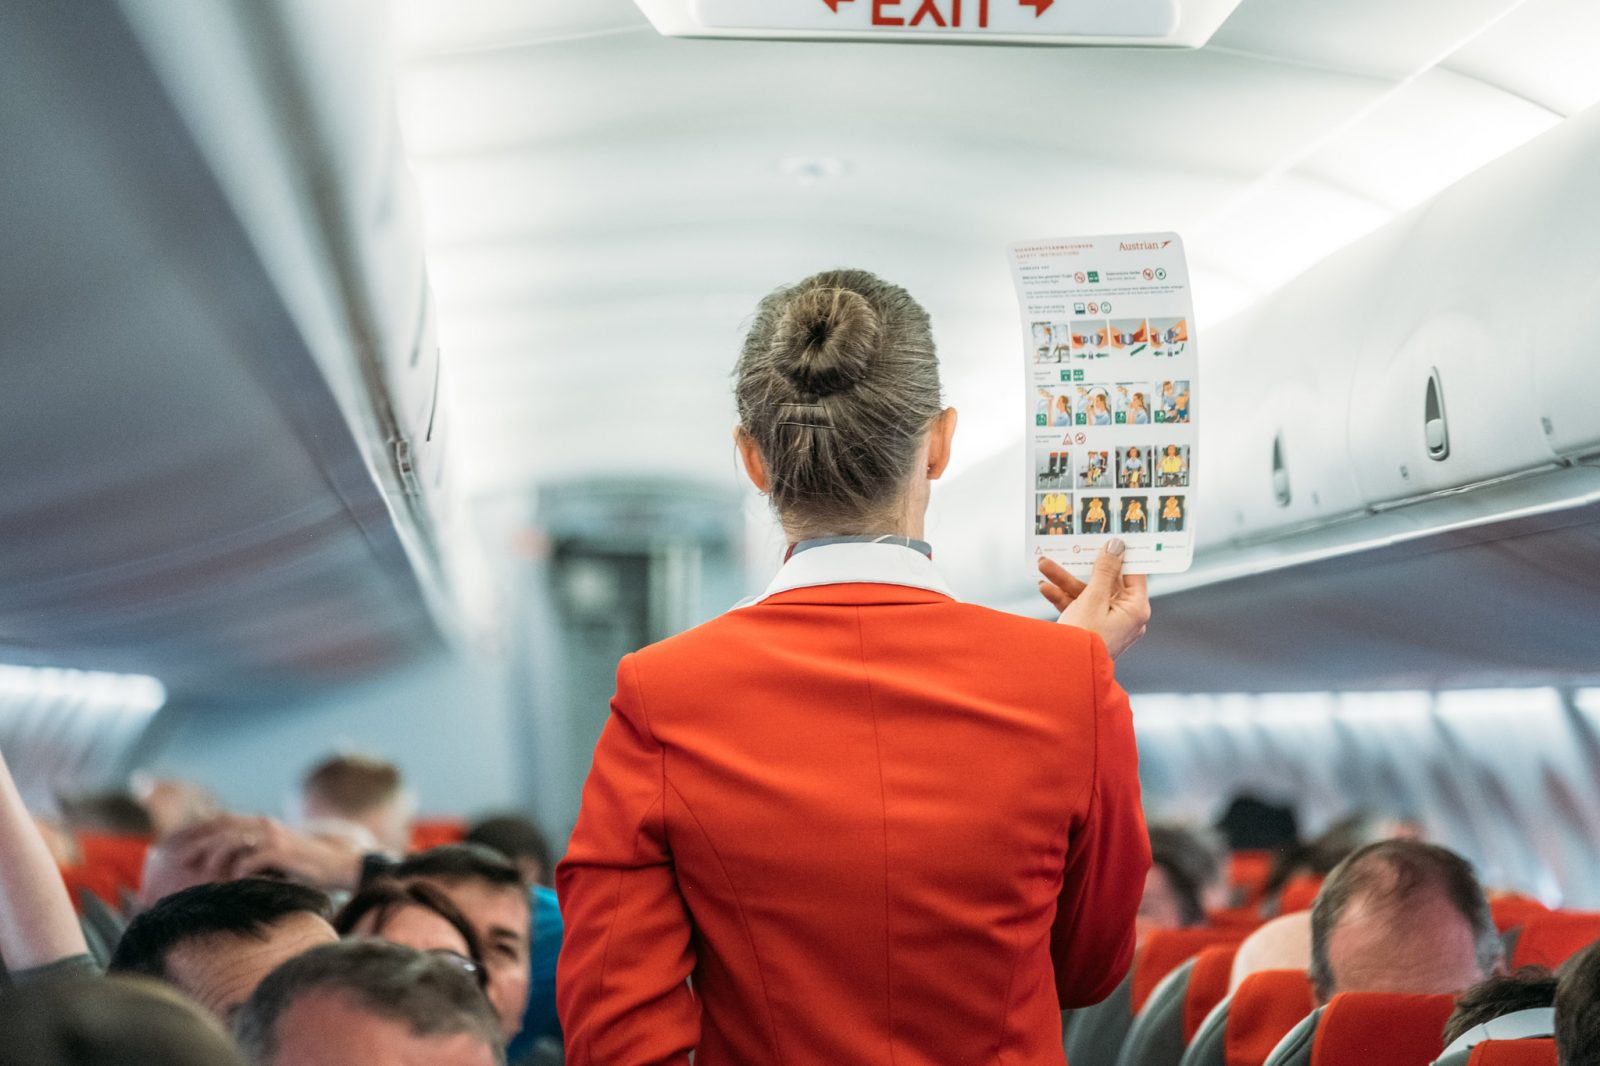 flight attendant holding up safety card in front of passengers